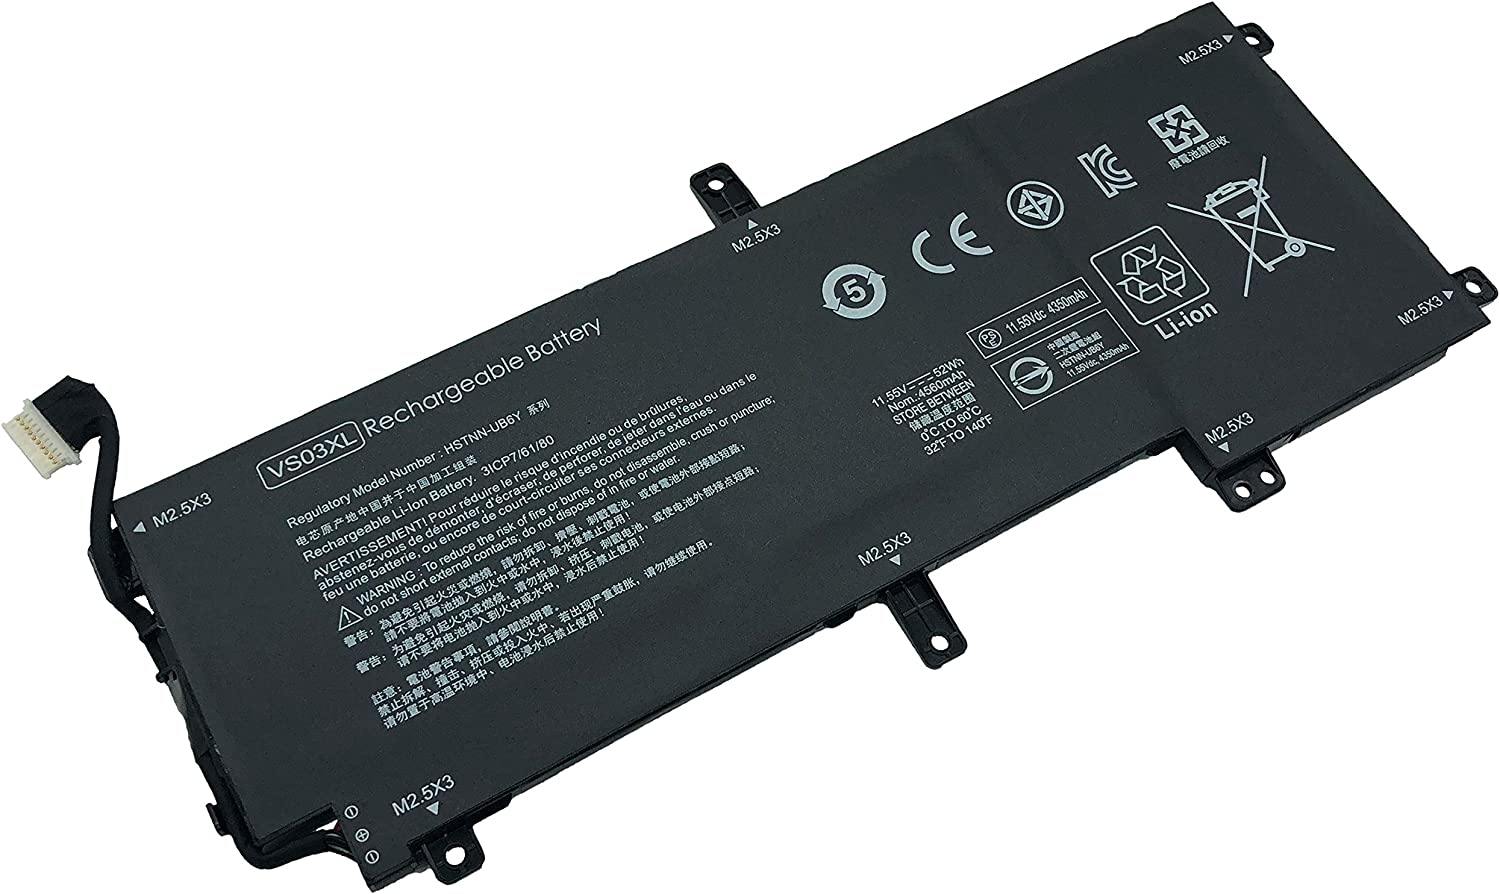 Tinkerpal VS03XL 11.55V 52WH Replacement Laptop Battery for HP Envy 15 Series 15-as001ng 15-as014wm 15-as025TU 15-as027TU 15-as032TU 15-as101ng 849047-541 849313-850 TPN-I125 HSTNN-UB6Y